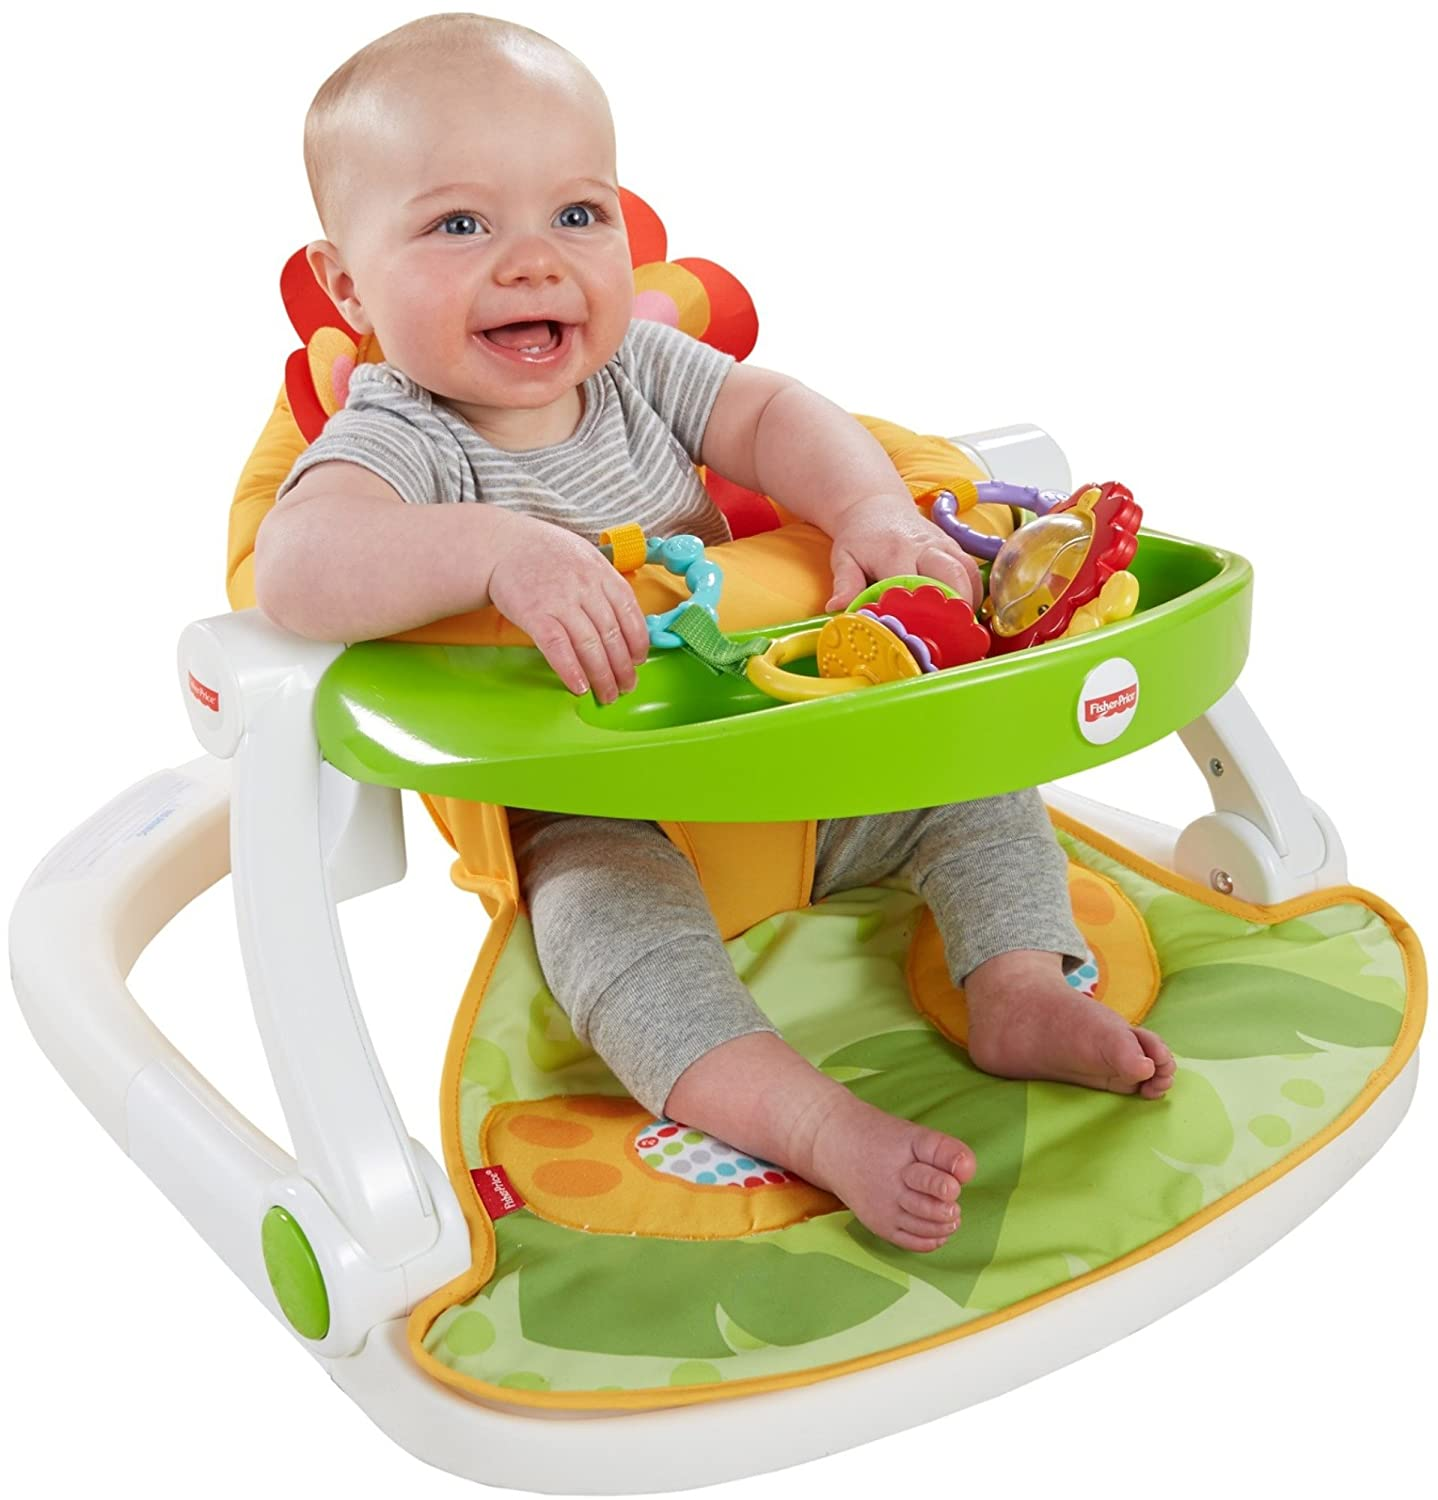 Happy Hills Fisher-Price Sit-Me-Up Floor Seat with Toy Tray